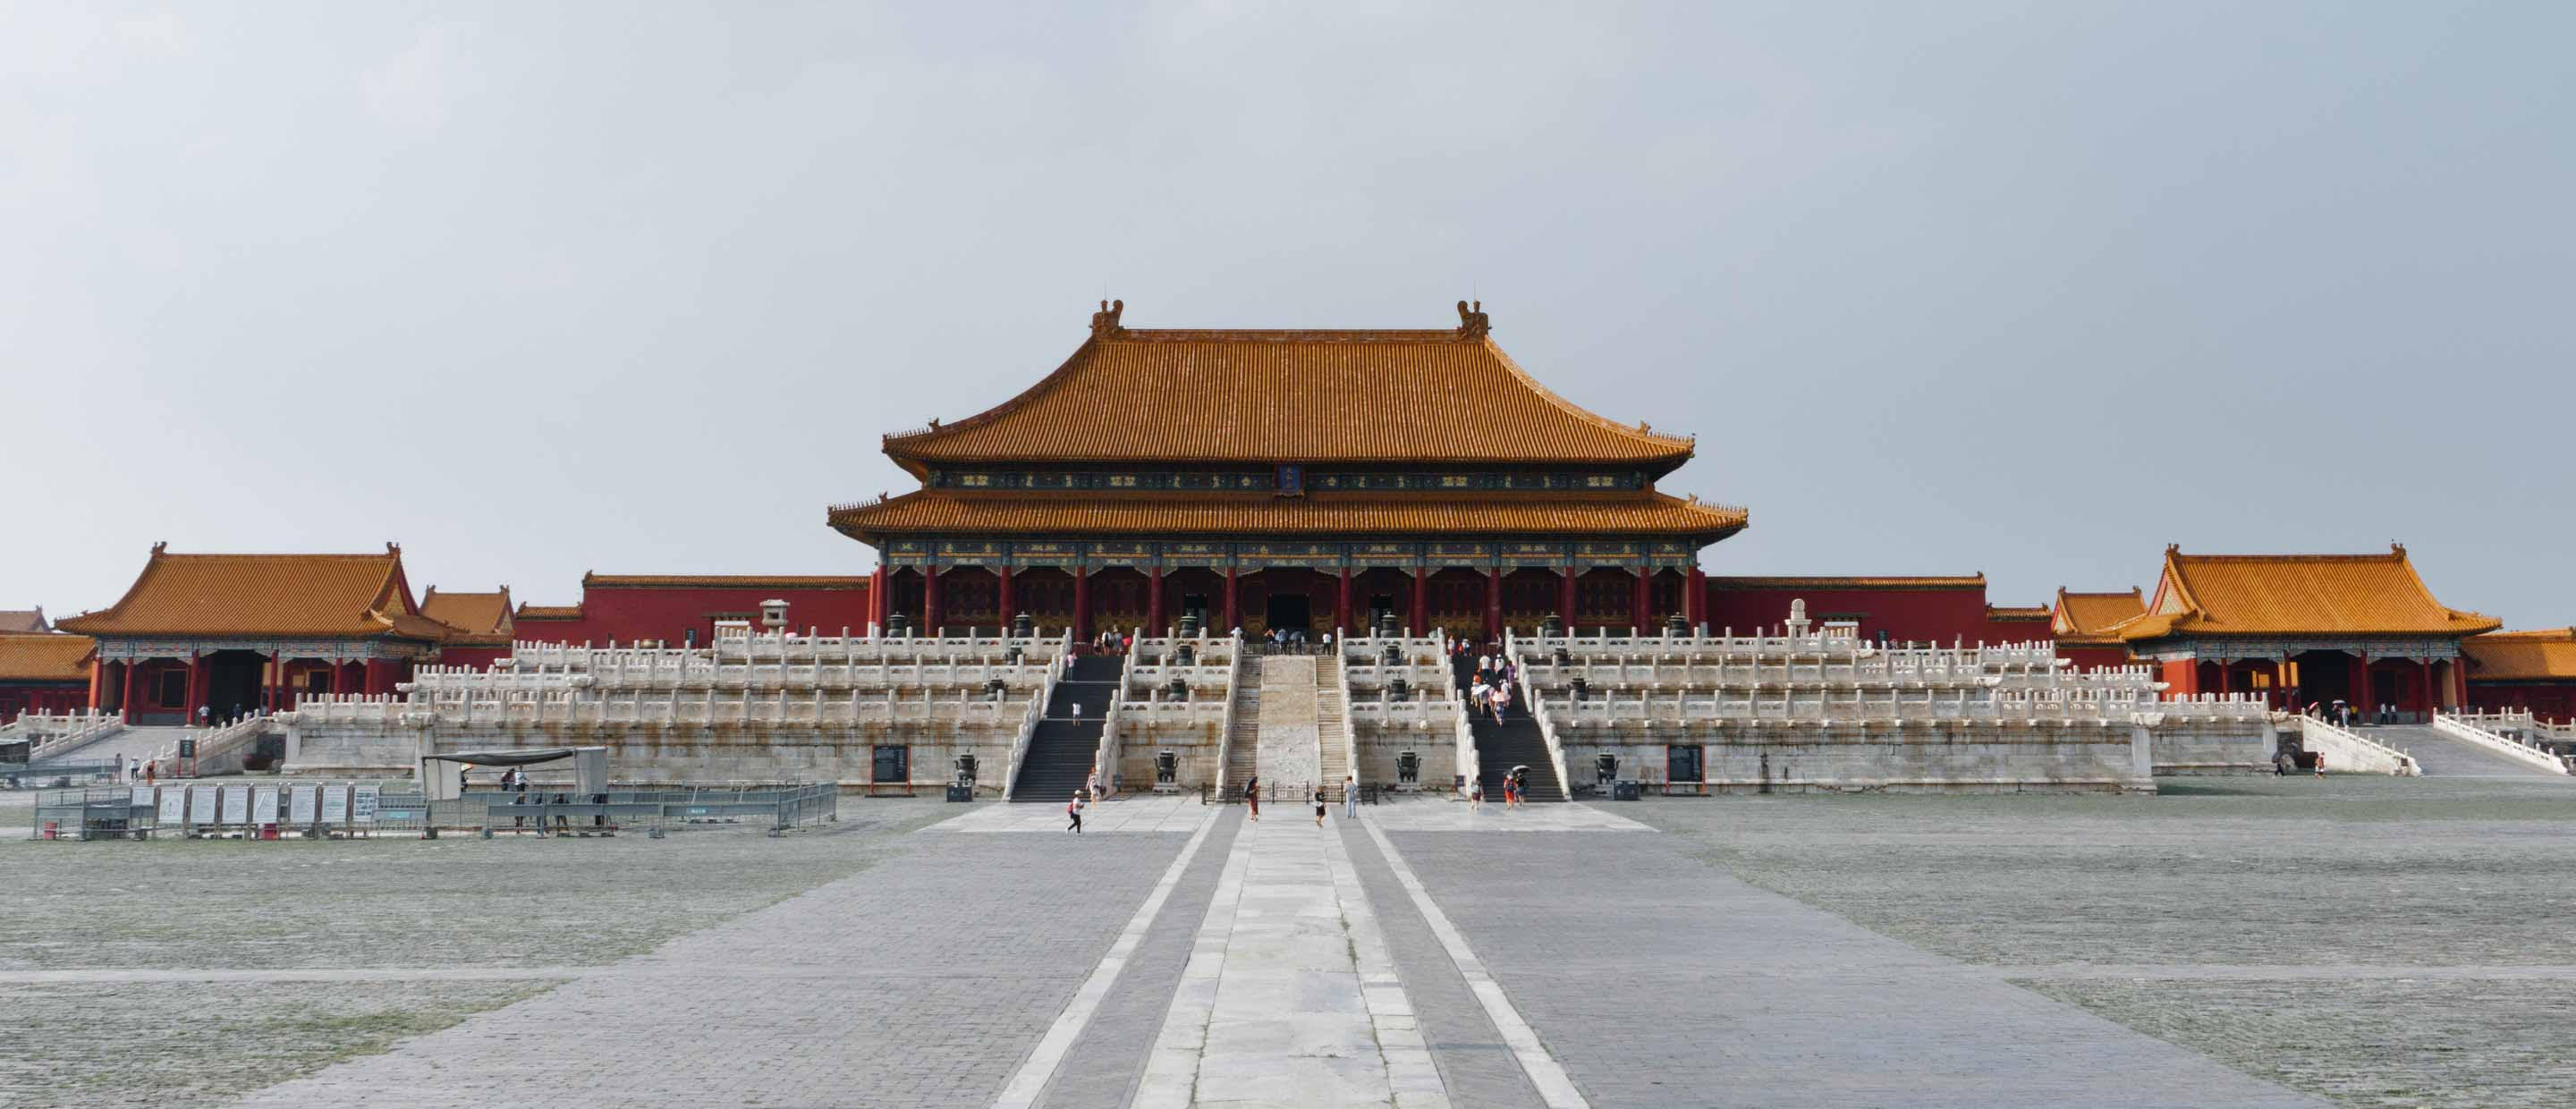 China: Further stimulus measures signaled after data disappointments